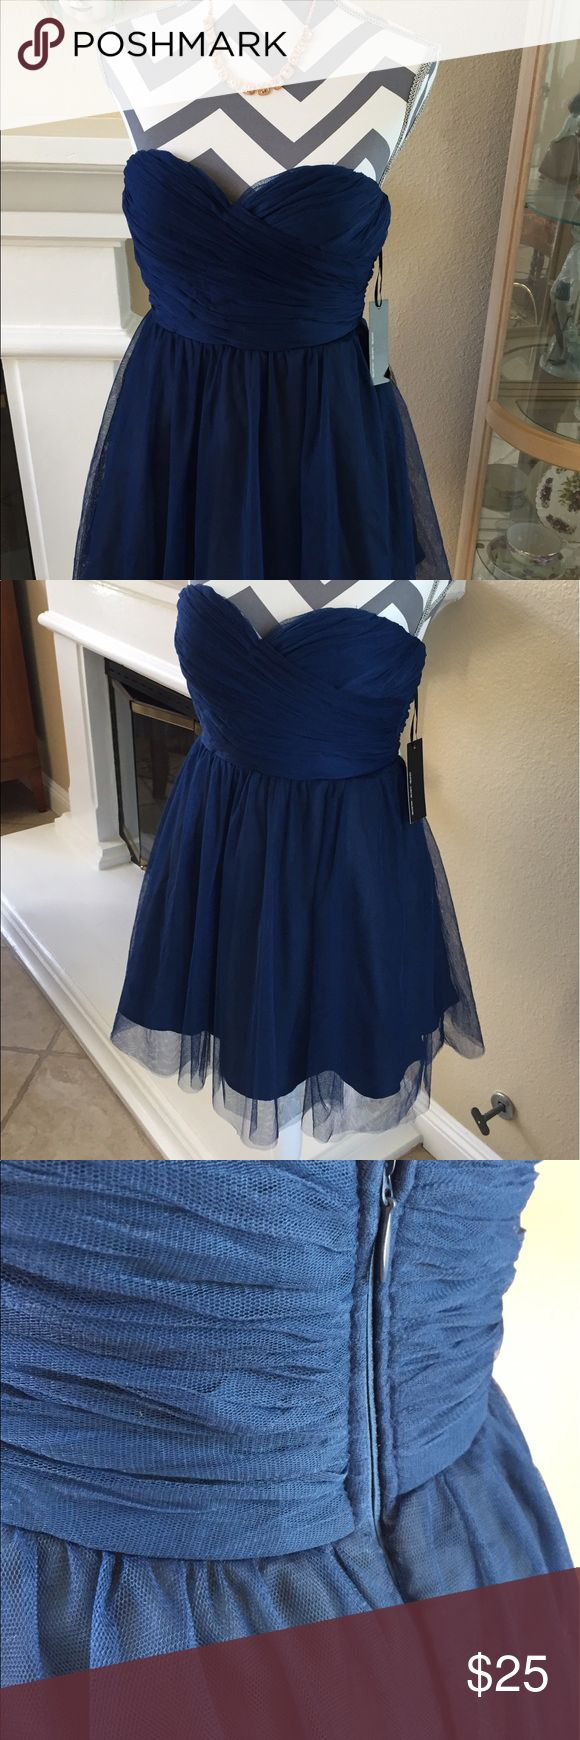 "Navy Tulle Strapless Party Dress Pretty Tulle Strapless party dress with sweetheart neckline. Hidden zipper.  27"" long. Underlace and overlay.  Perfect for a special occasion or night out.  Brand new with tags. Lulu's Dresses Mini"